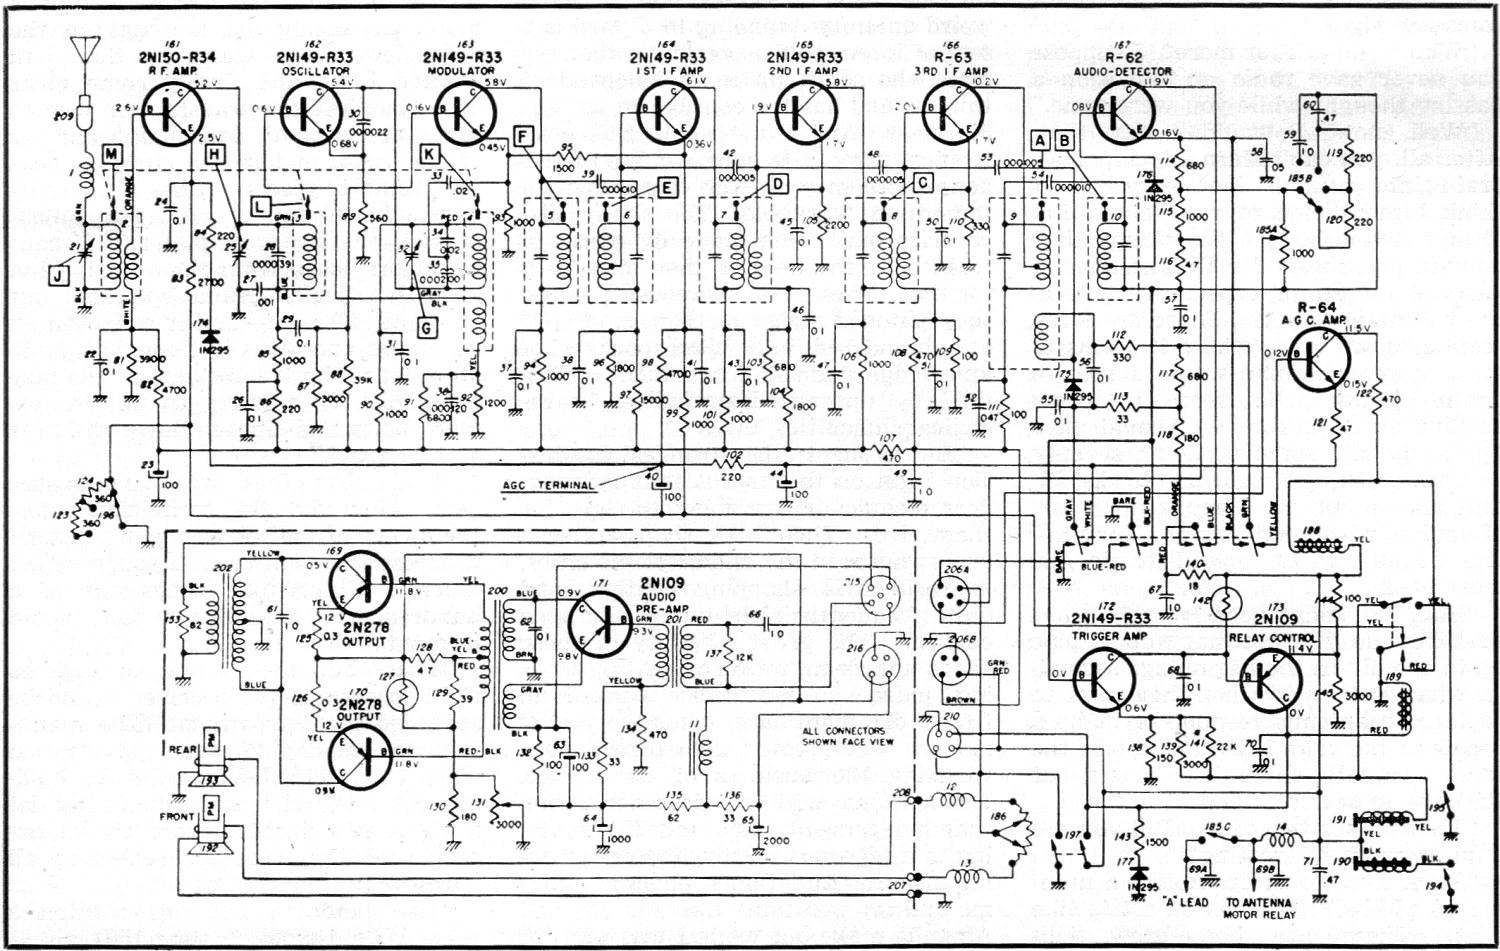 bose 501 wiring diagram  bose  free engine image for user manual download